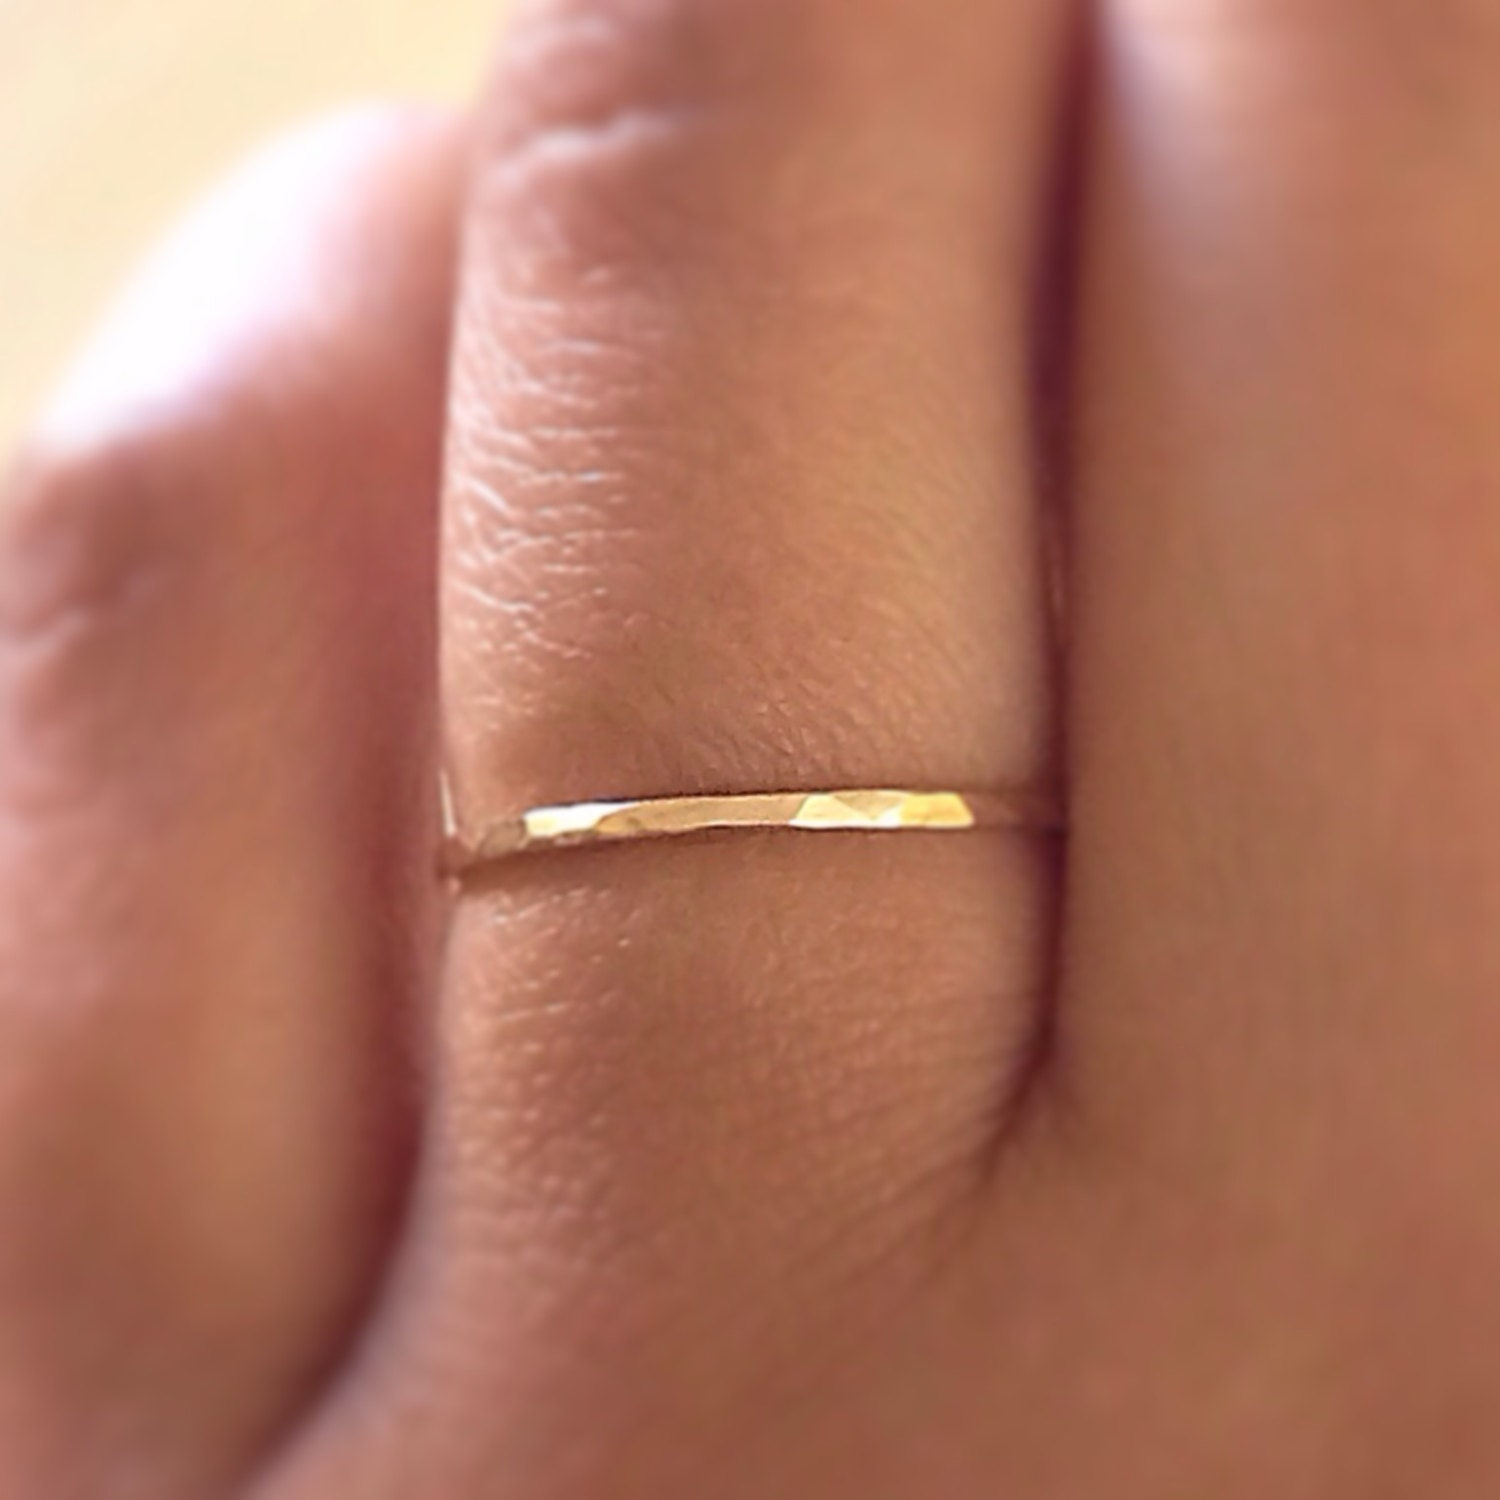 fullxfull rings ringstackingthin p goldsimple midi gold il geometric ringskinny bandtiny ring finger thin stacking ringstop ringpromis skinny pipe in